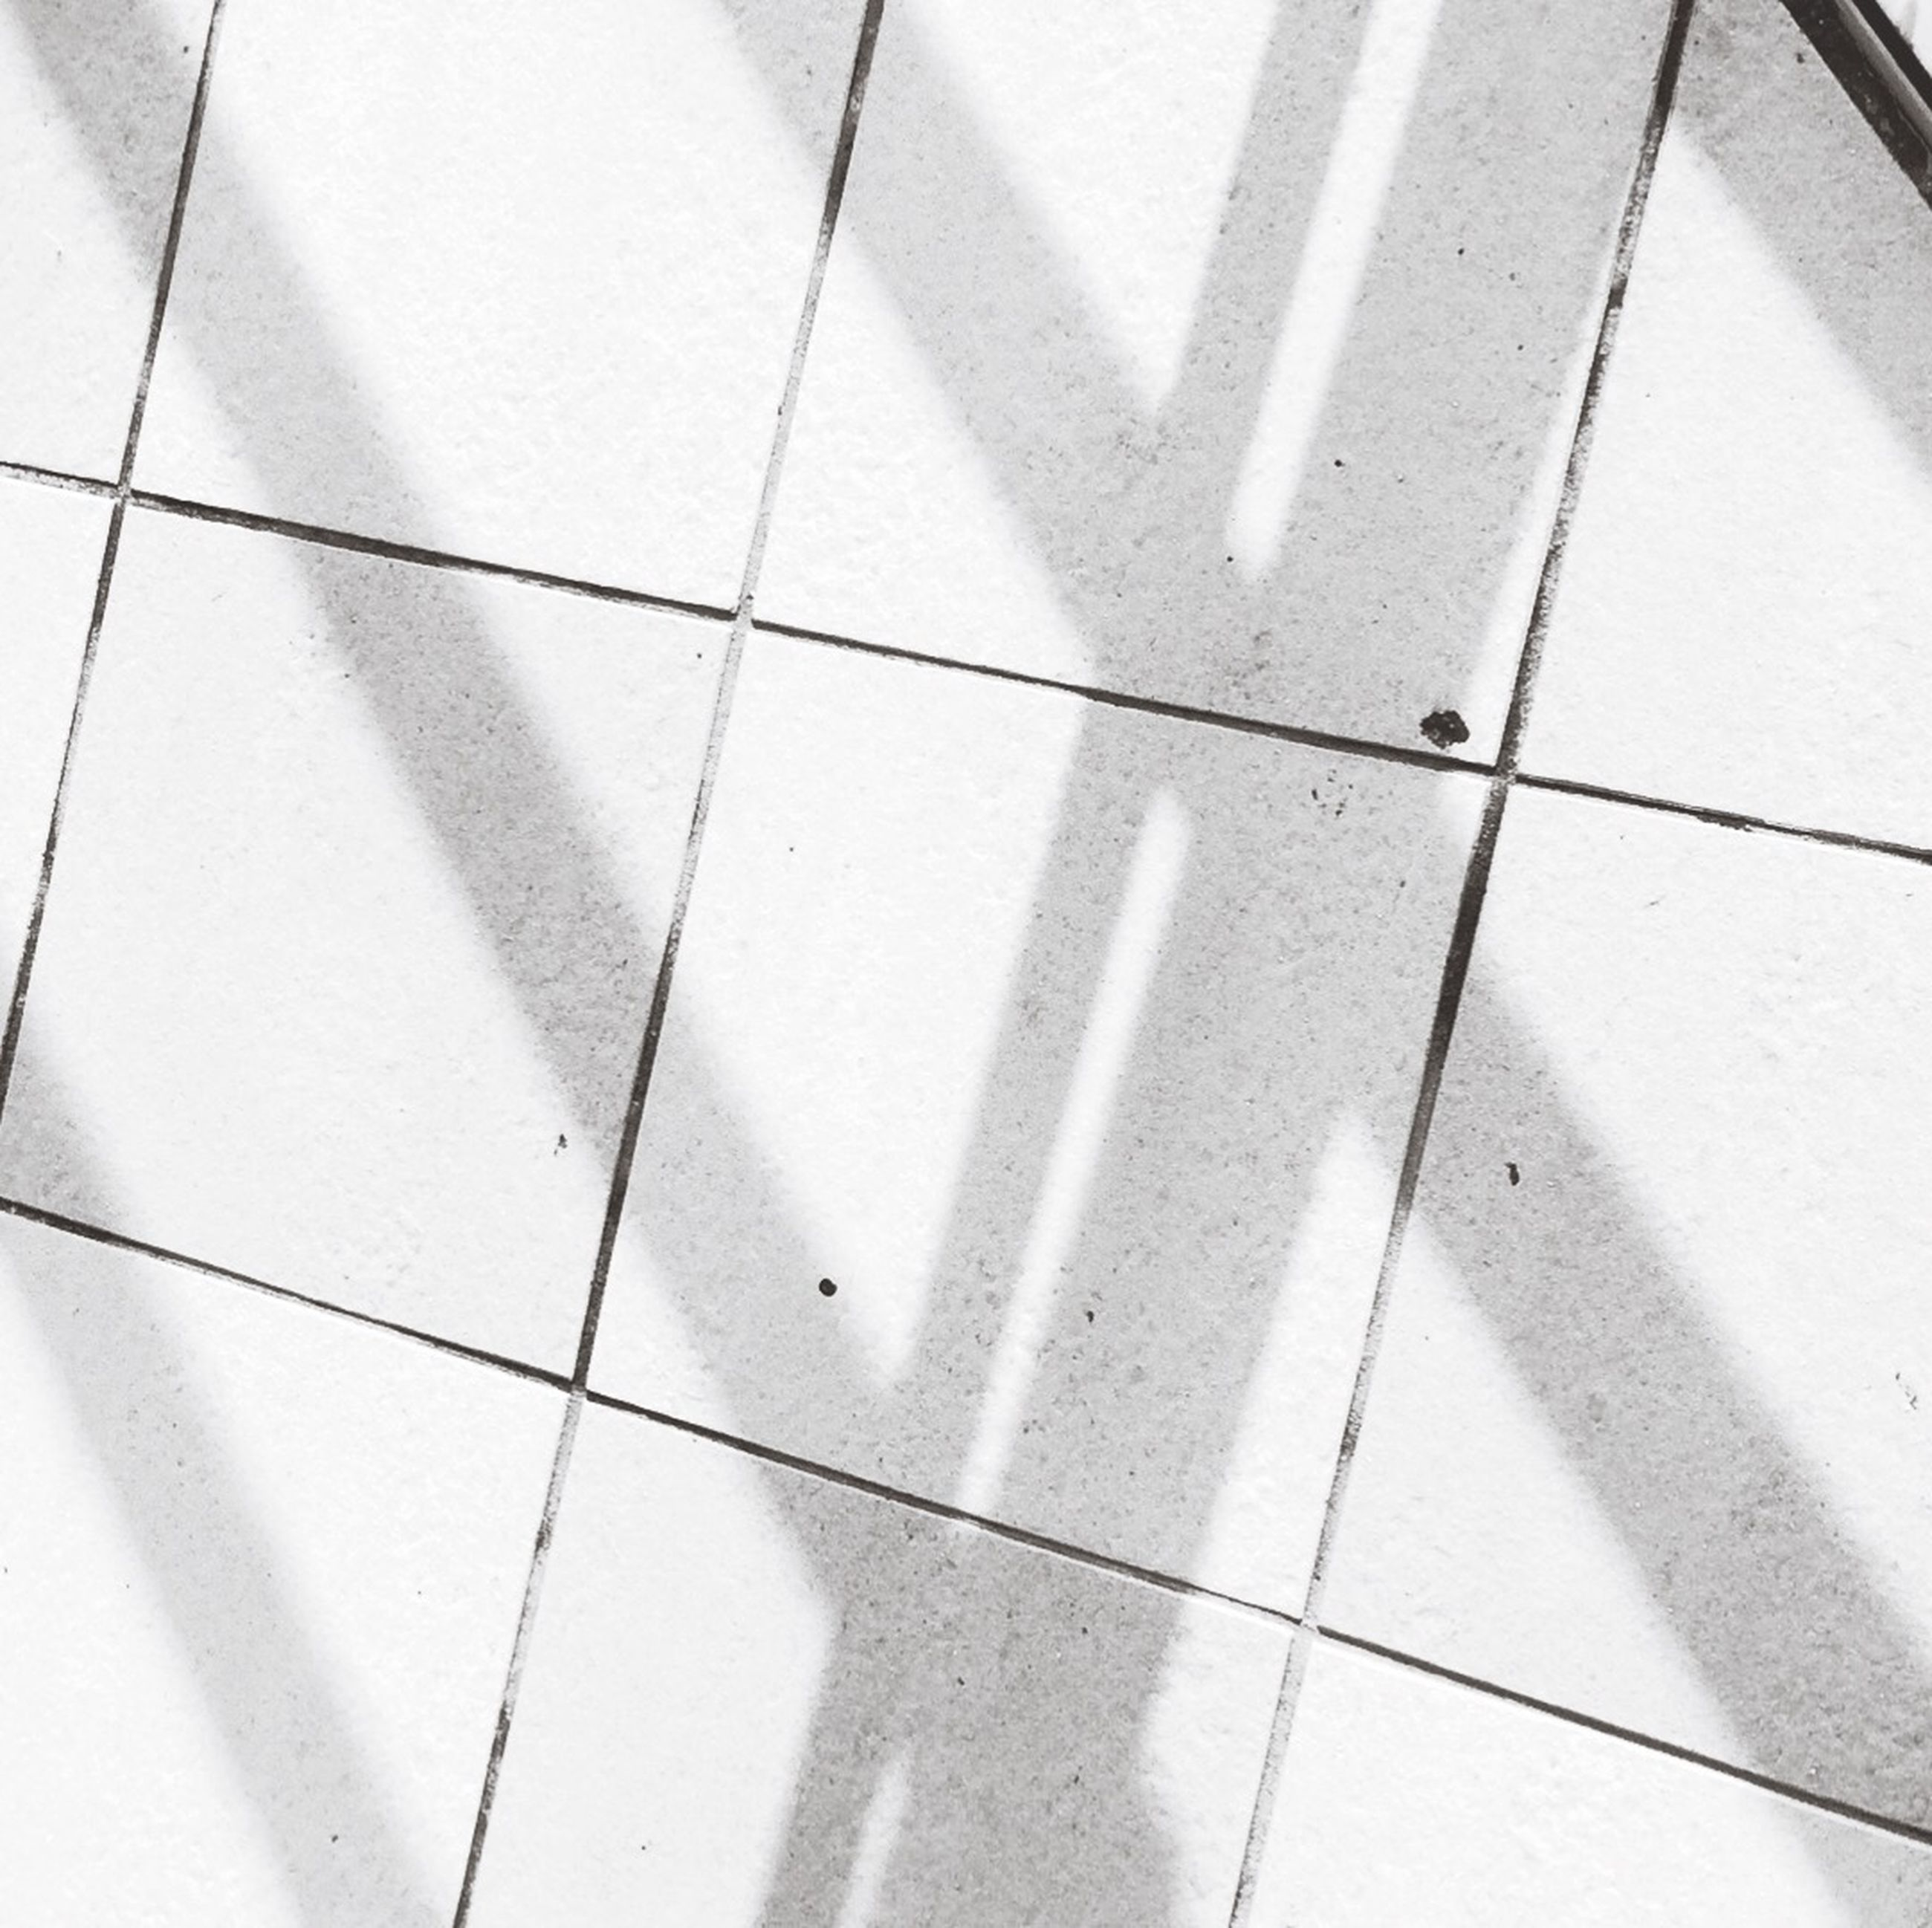 tiled floor, flooring, tile, indoors, high angle view, pattern, shadow, floor, low section, square shape, geometric shape, sunlight, white color, paving stone, reflection, full frame, day, backgrounds, footpath, person